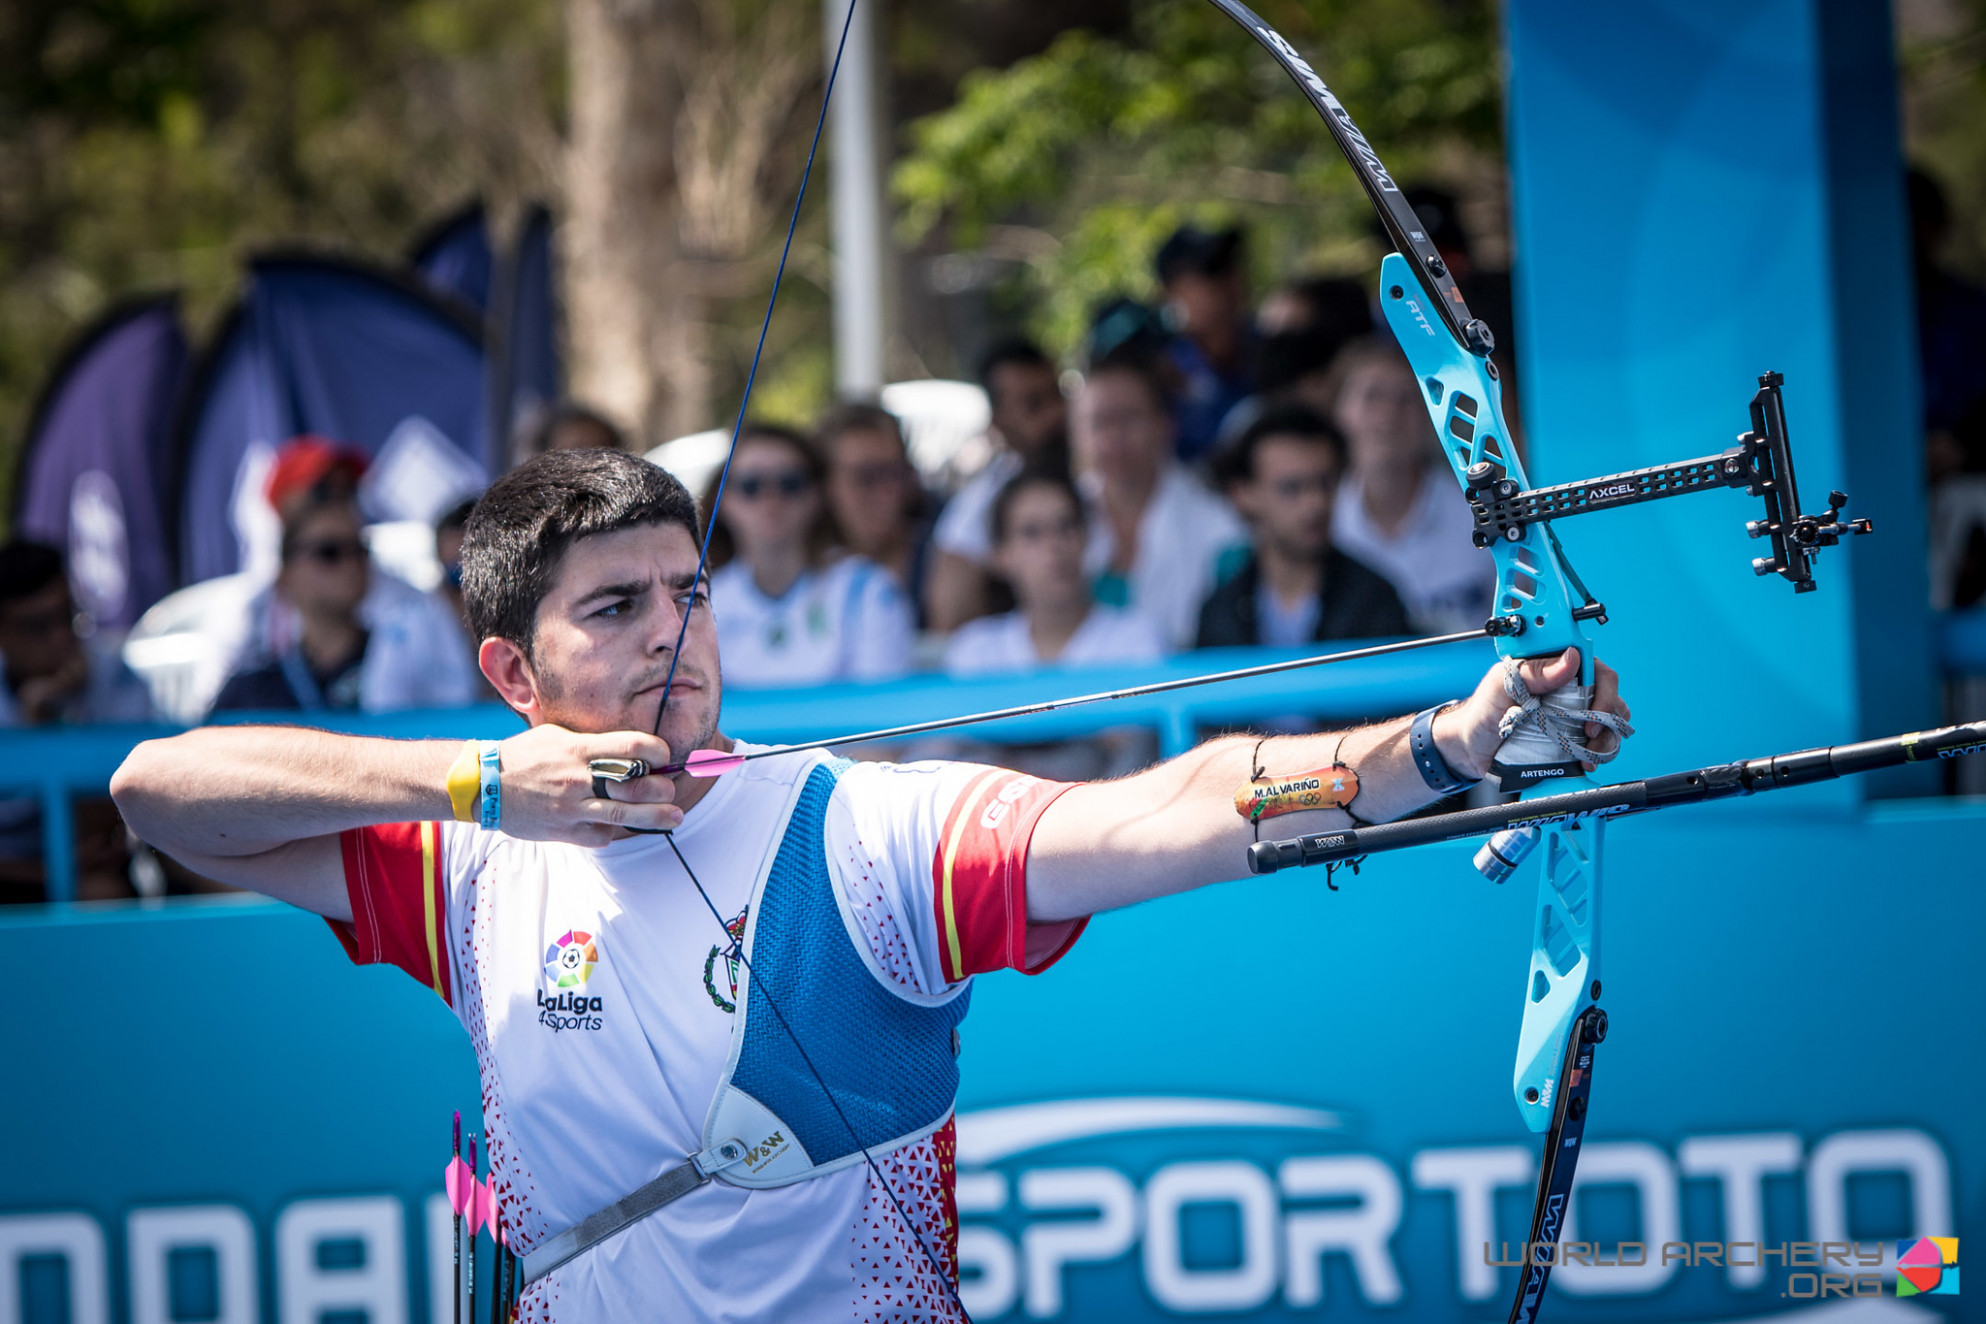 Miguel Alvarino Garcia named to Spanish Olympic team for Tokyo ..